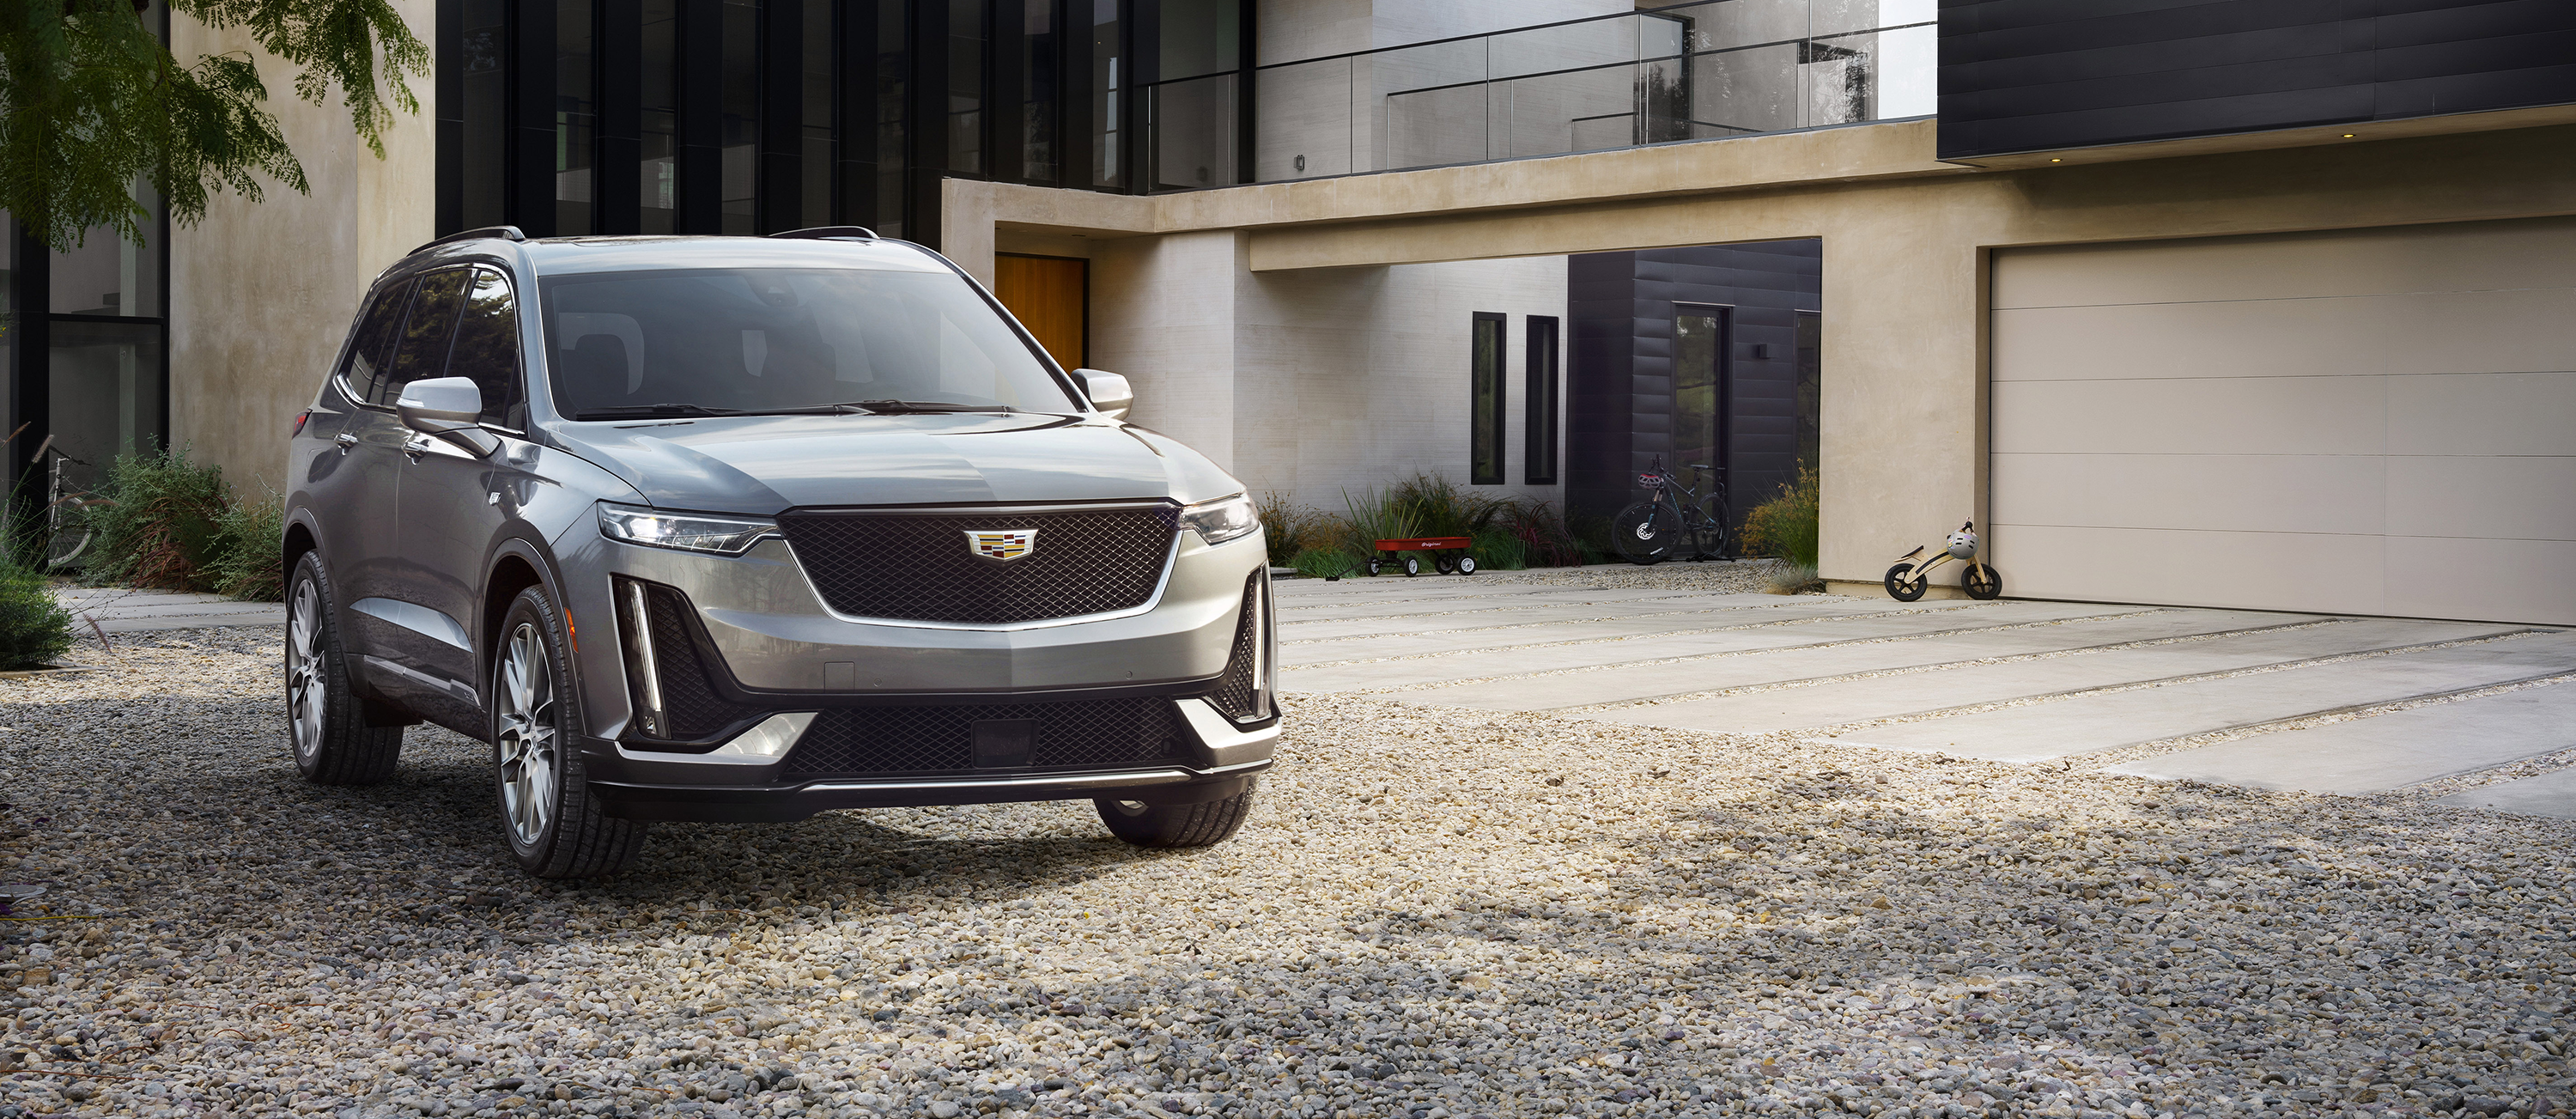 82 All New 2020 Cadillac Xt6 Length Spesification by 2020 Cadillac Xt6 Length